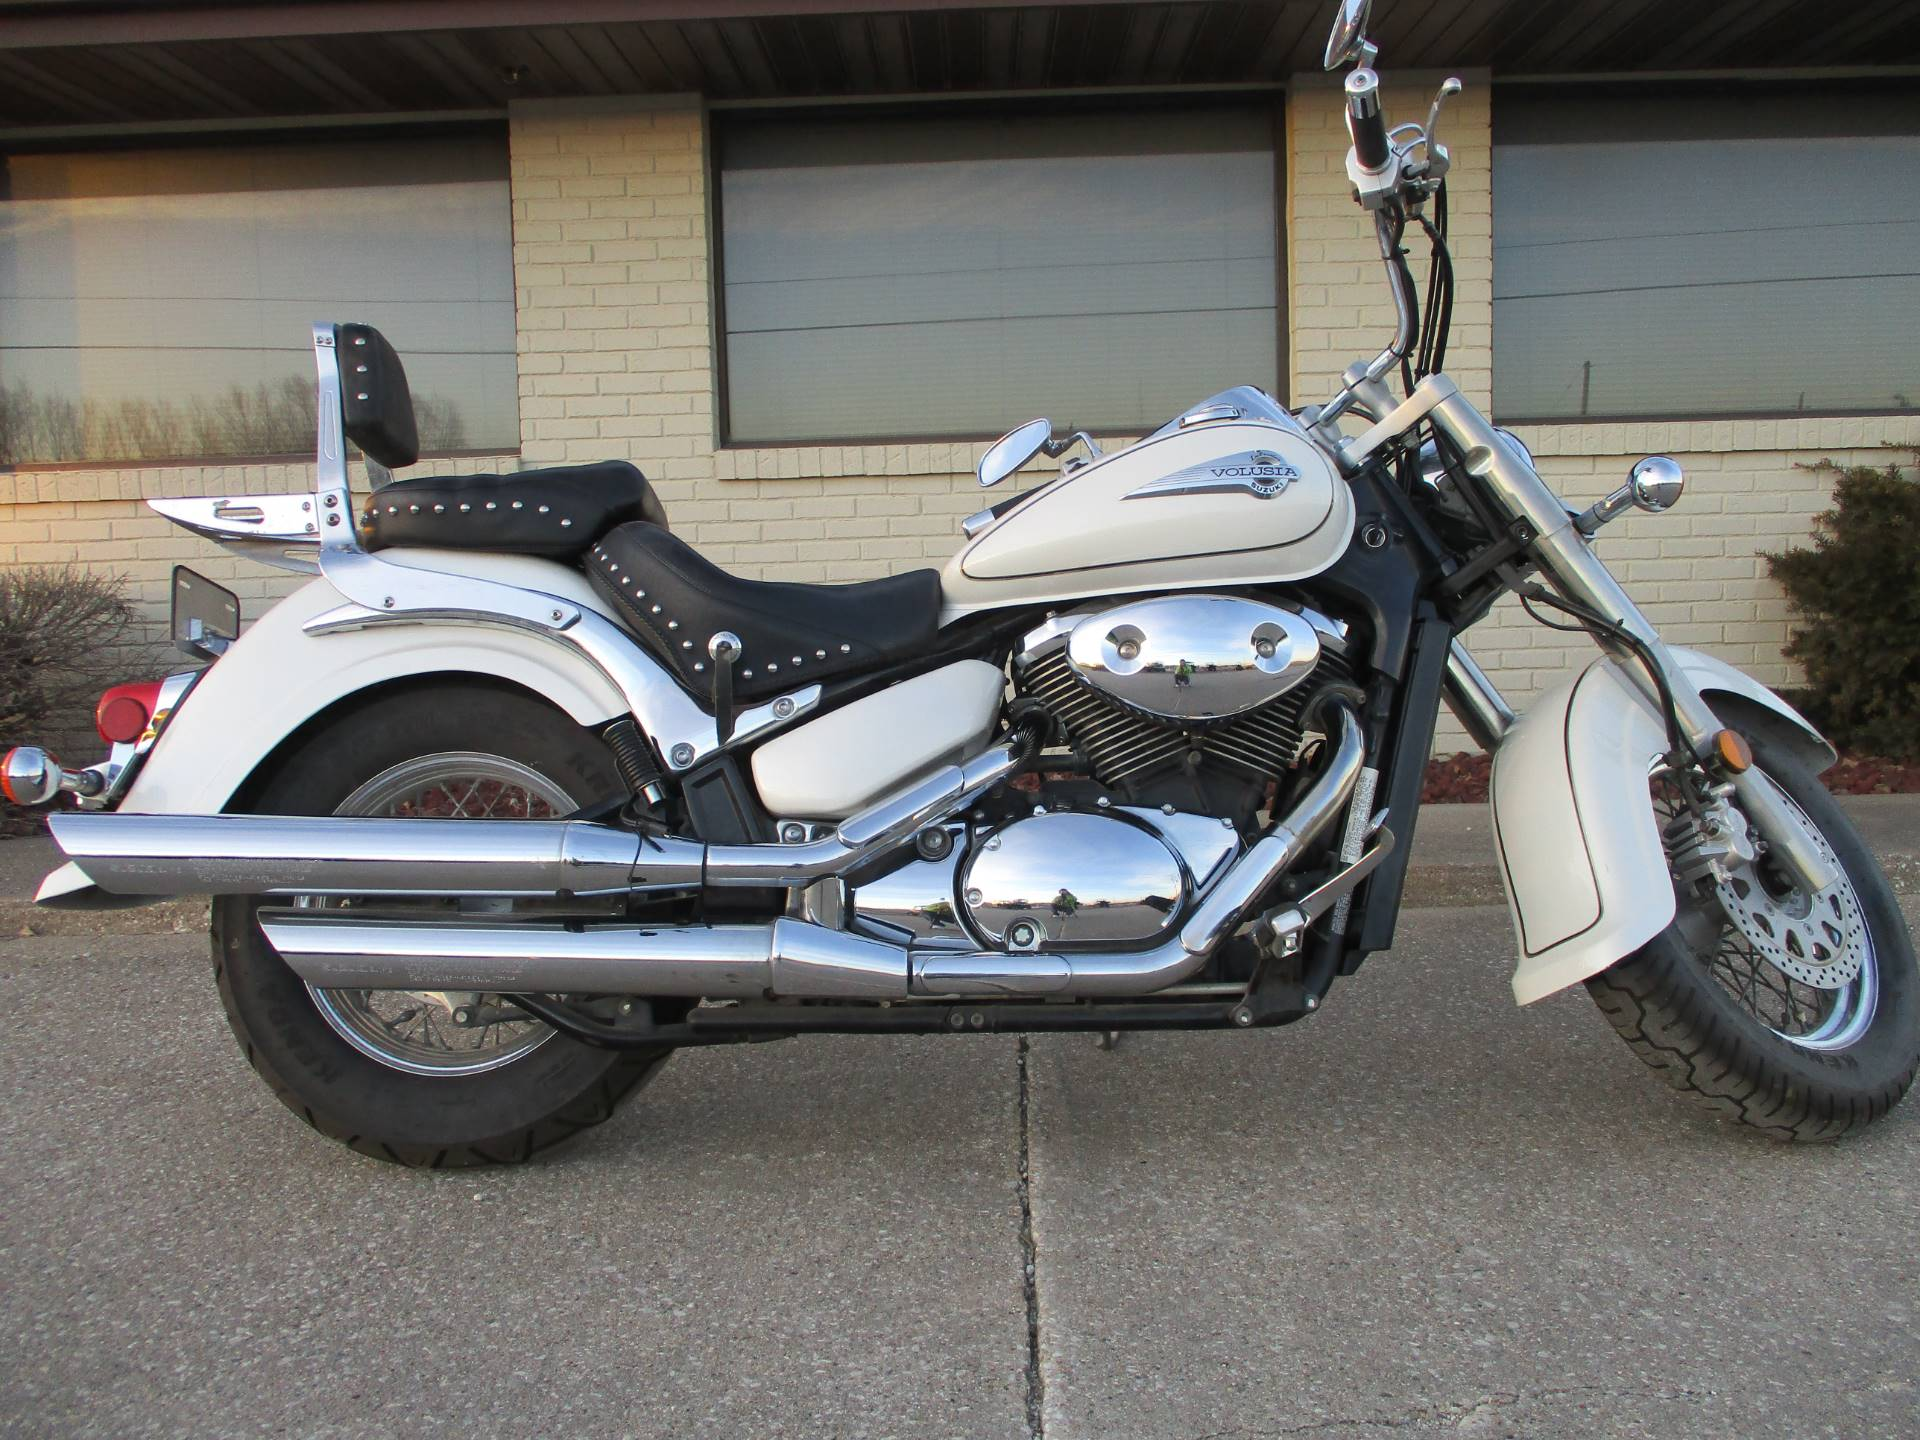 2003 Suzuki Intruder® Volusia in Winterset, Iowa - Photo 1